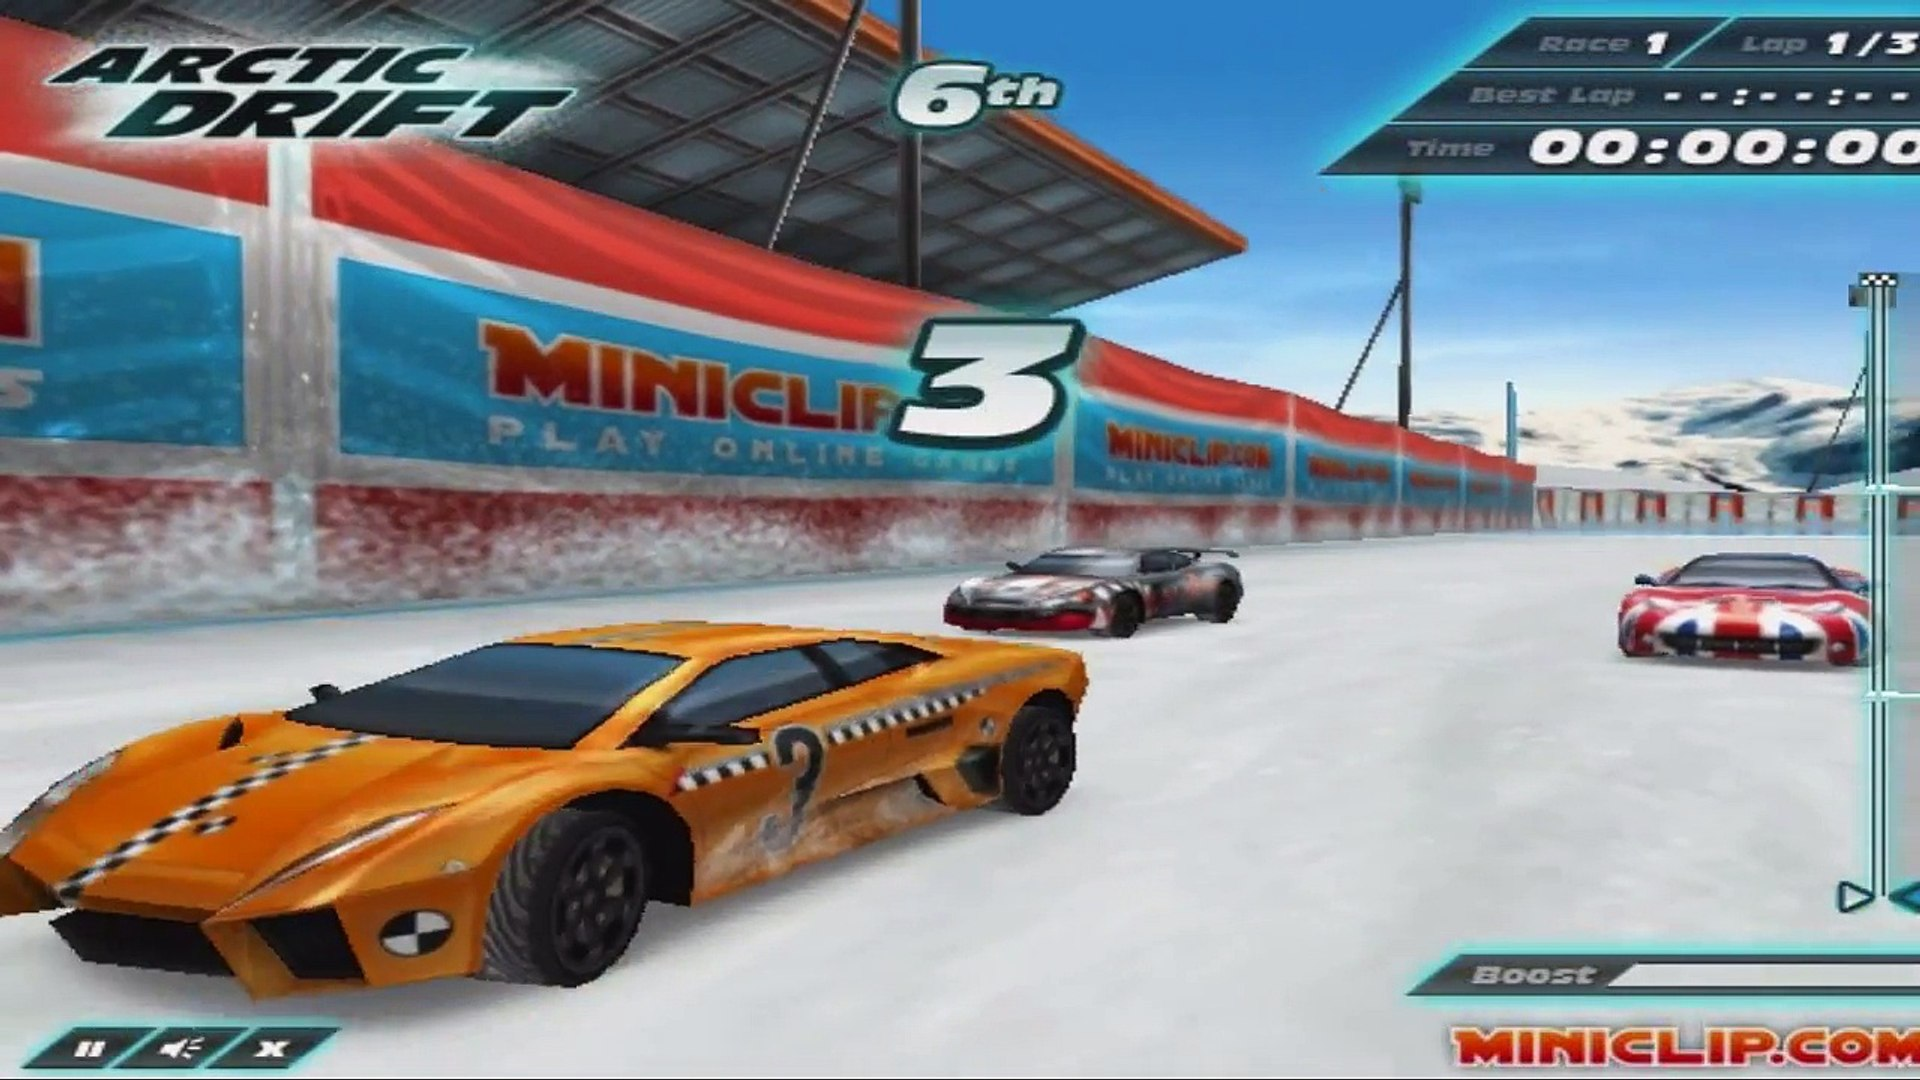 Arctic Drift Car Games Online Free Car Racing Games To Play Now Video Dailymotion